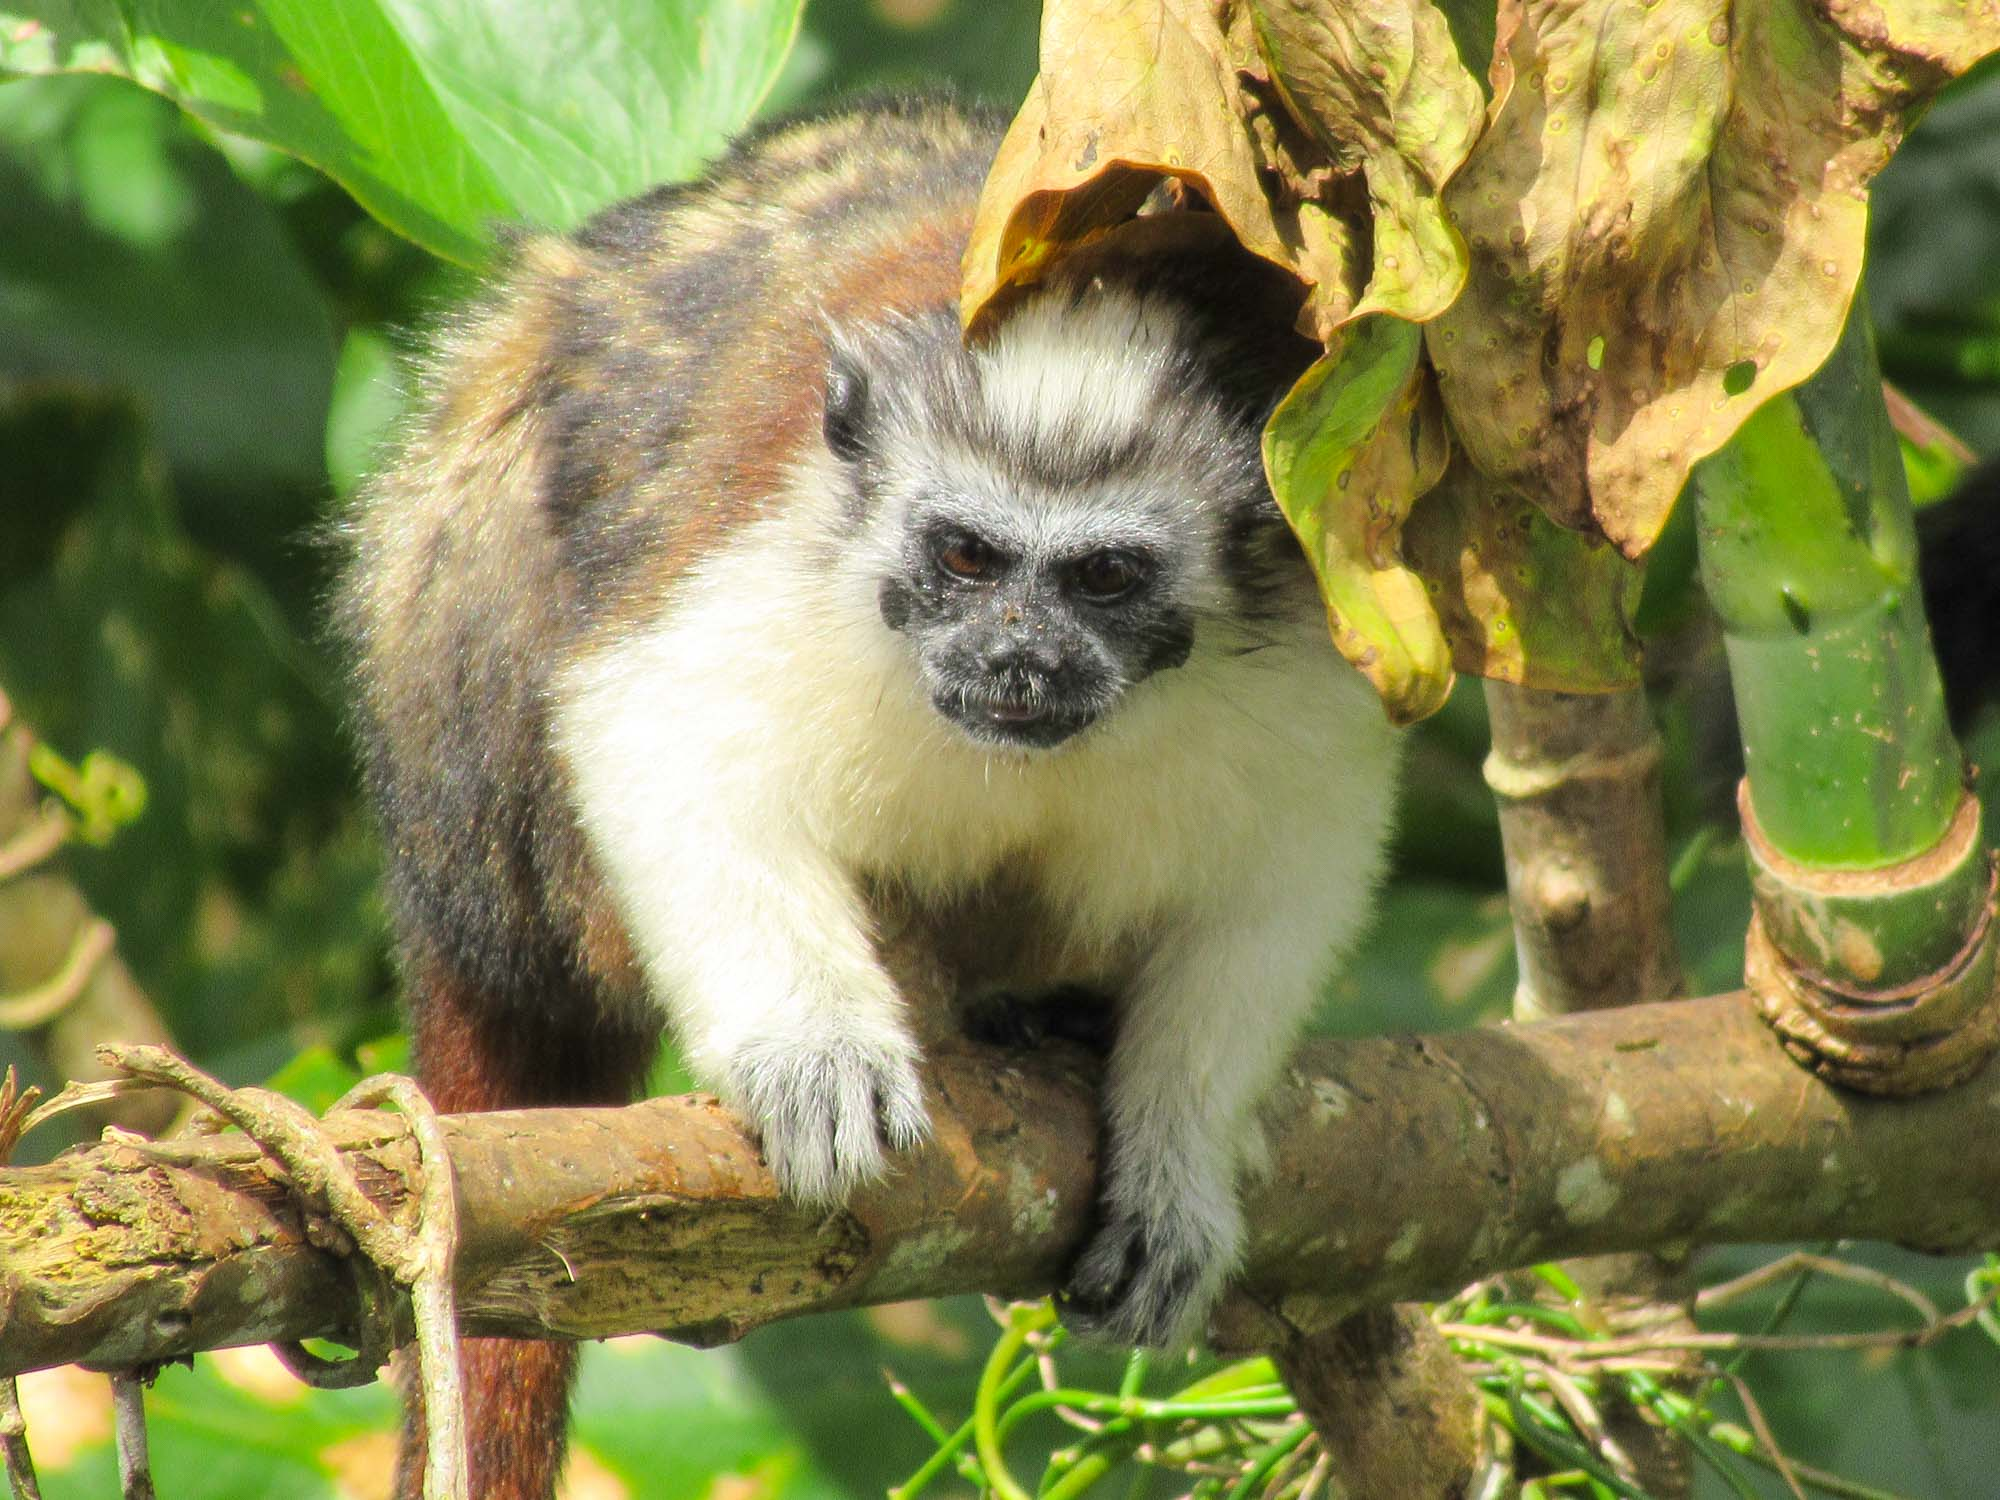 Titi or Tamarin monkey in tree on Monkey Island